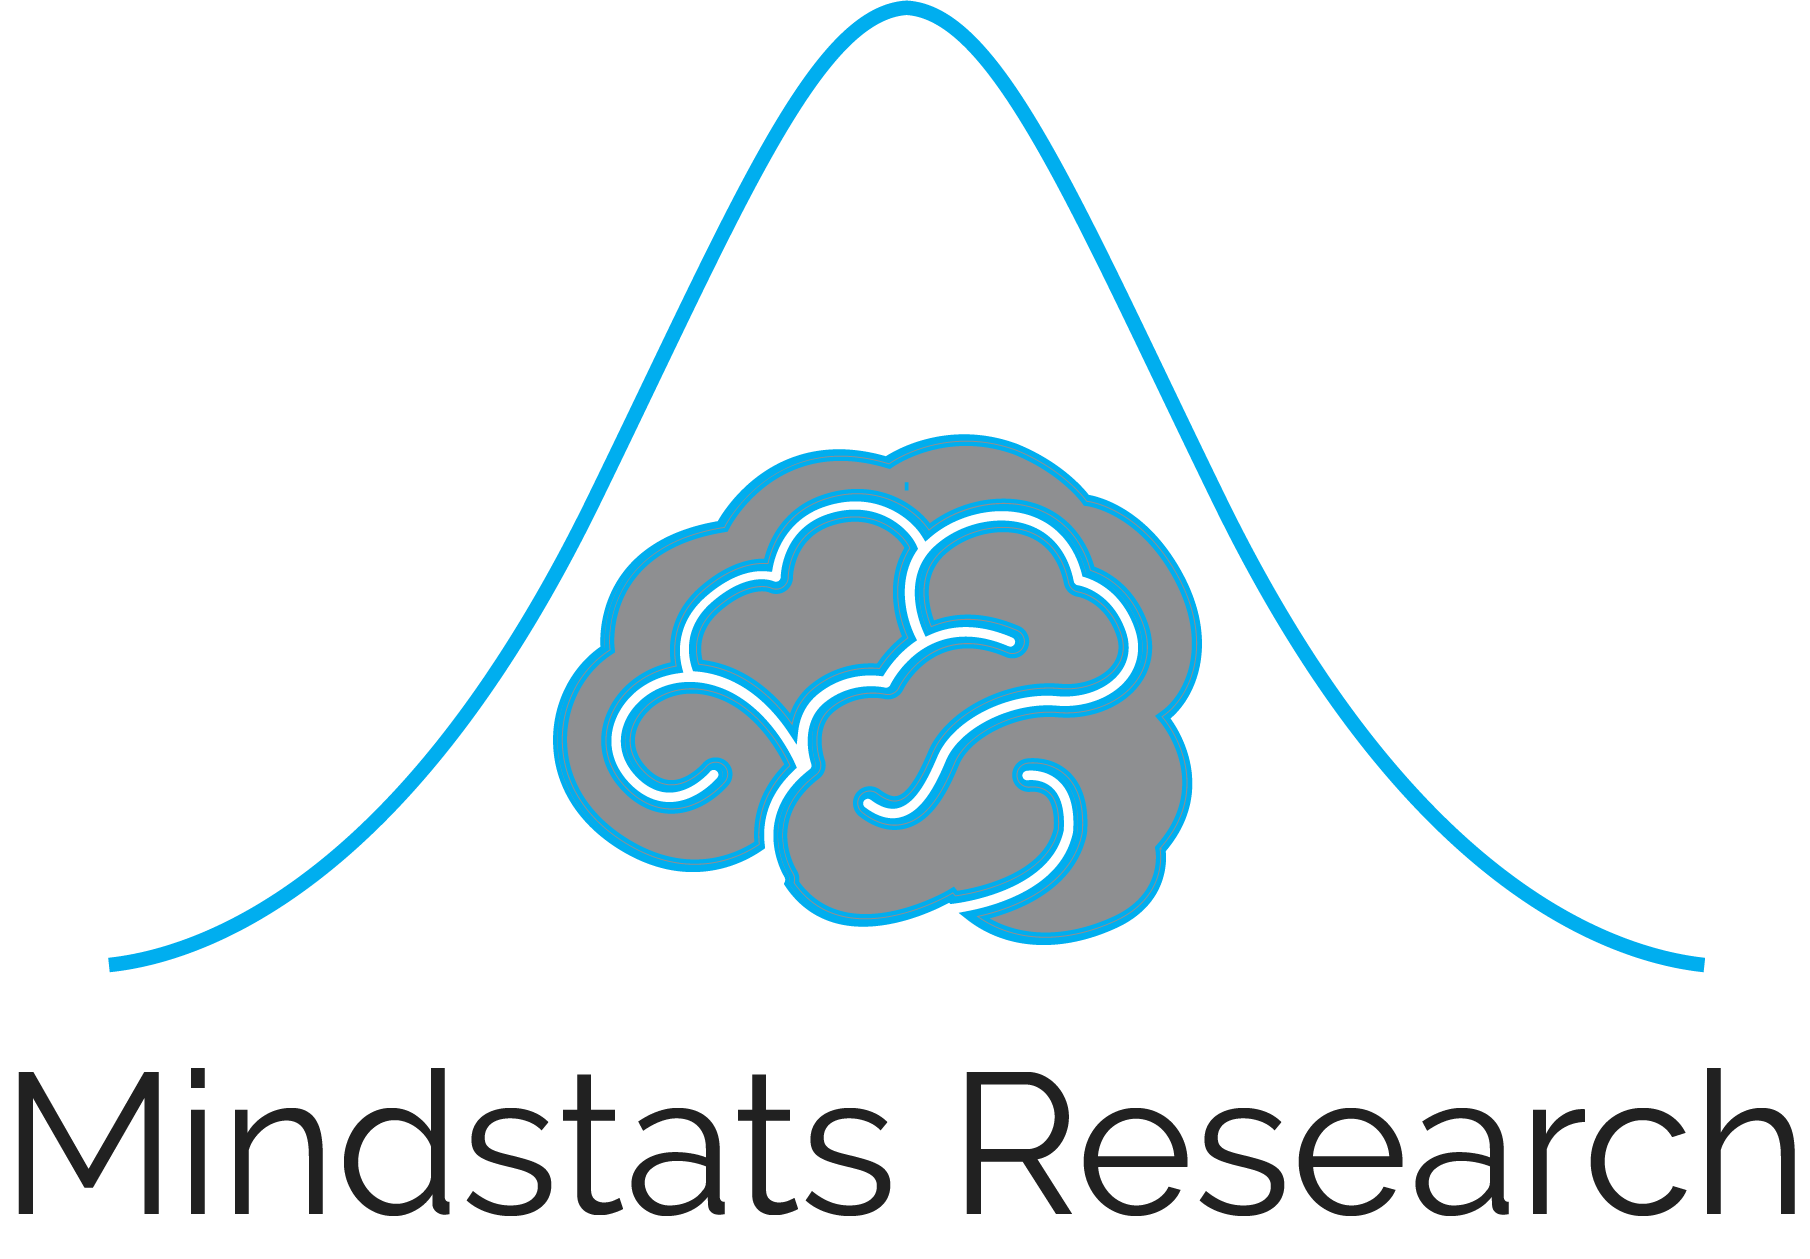 Mindstats Research